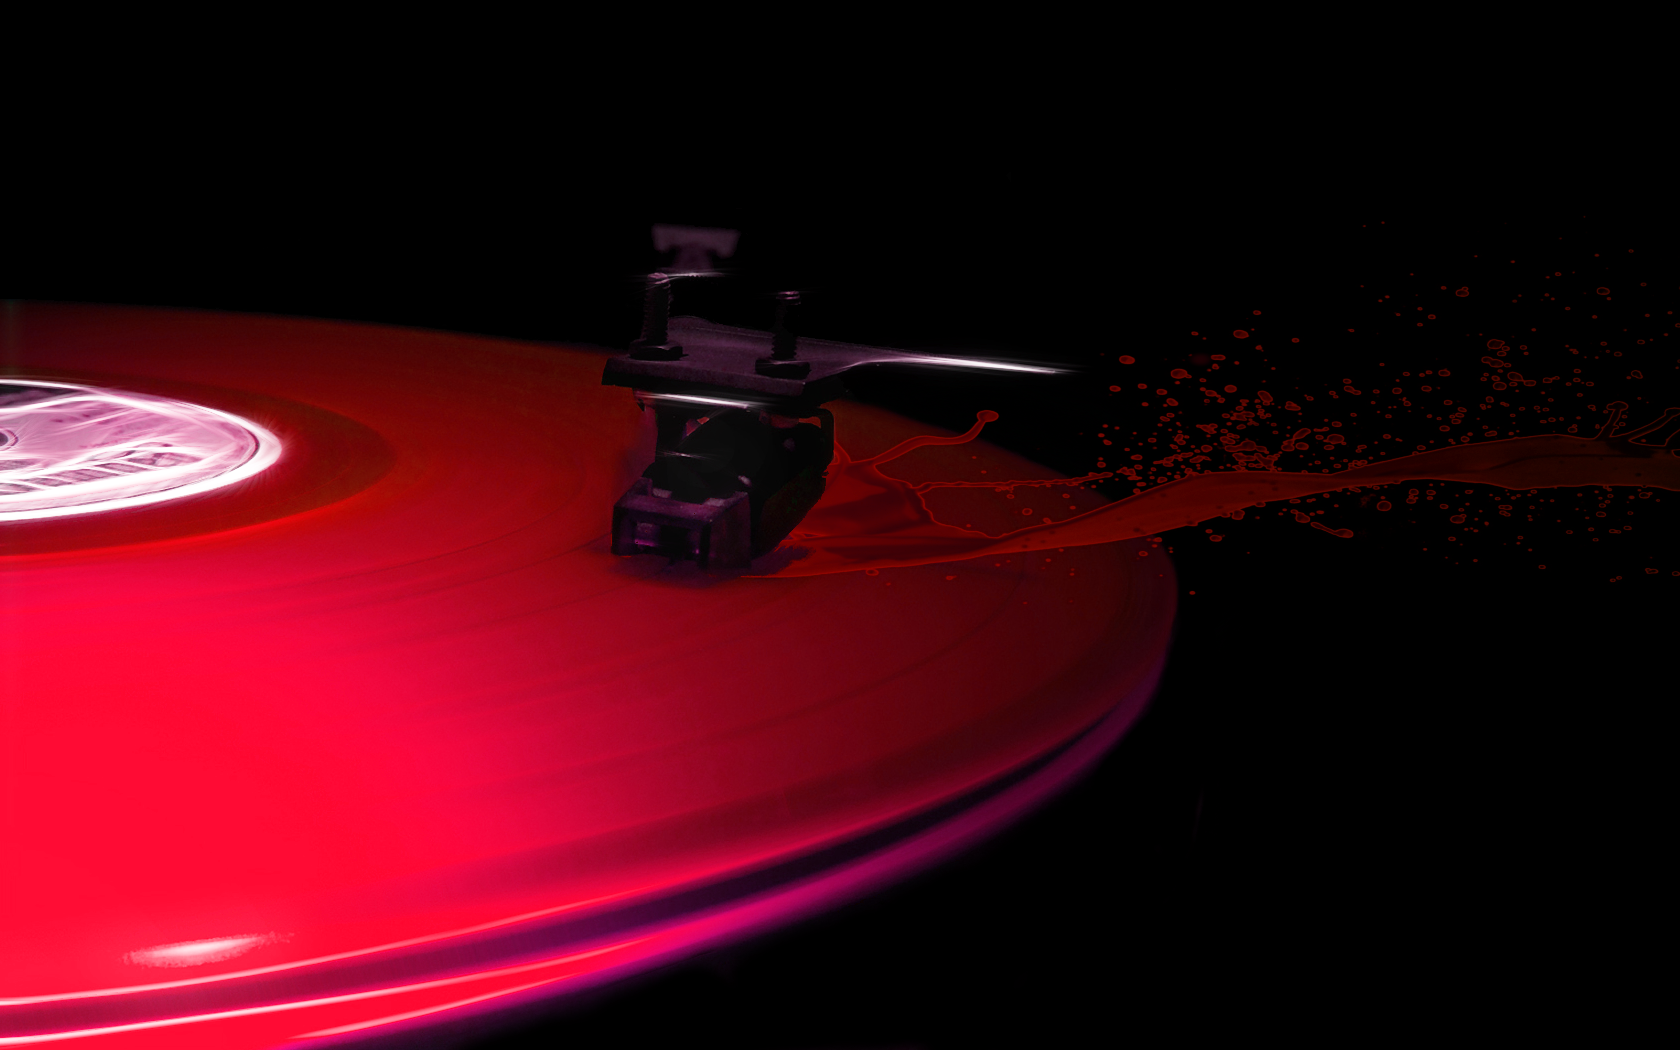 FHDQ Turntable Wallpapers | Background ID:38698069